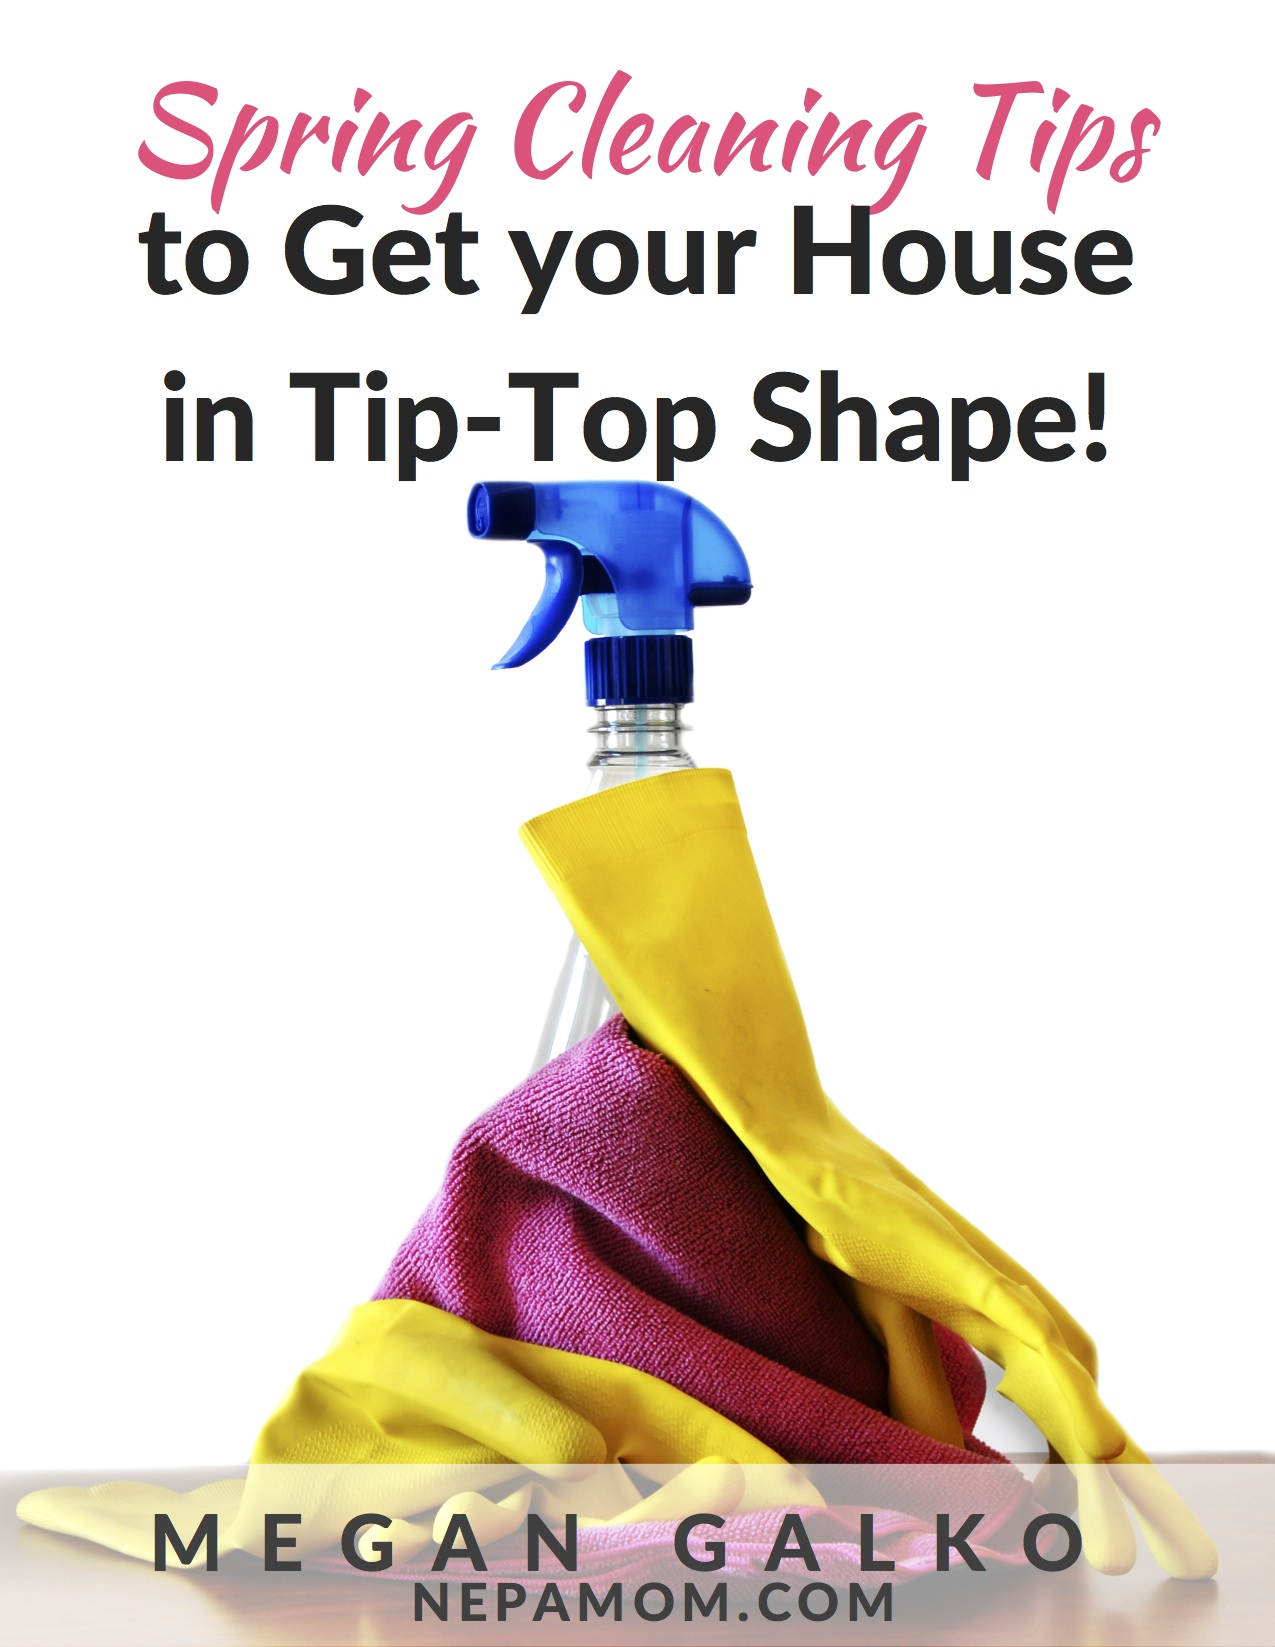 house cleaning tips nepa mom spring cleaning tips to get your house in tip top shape